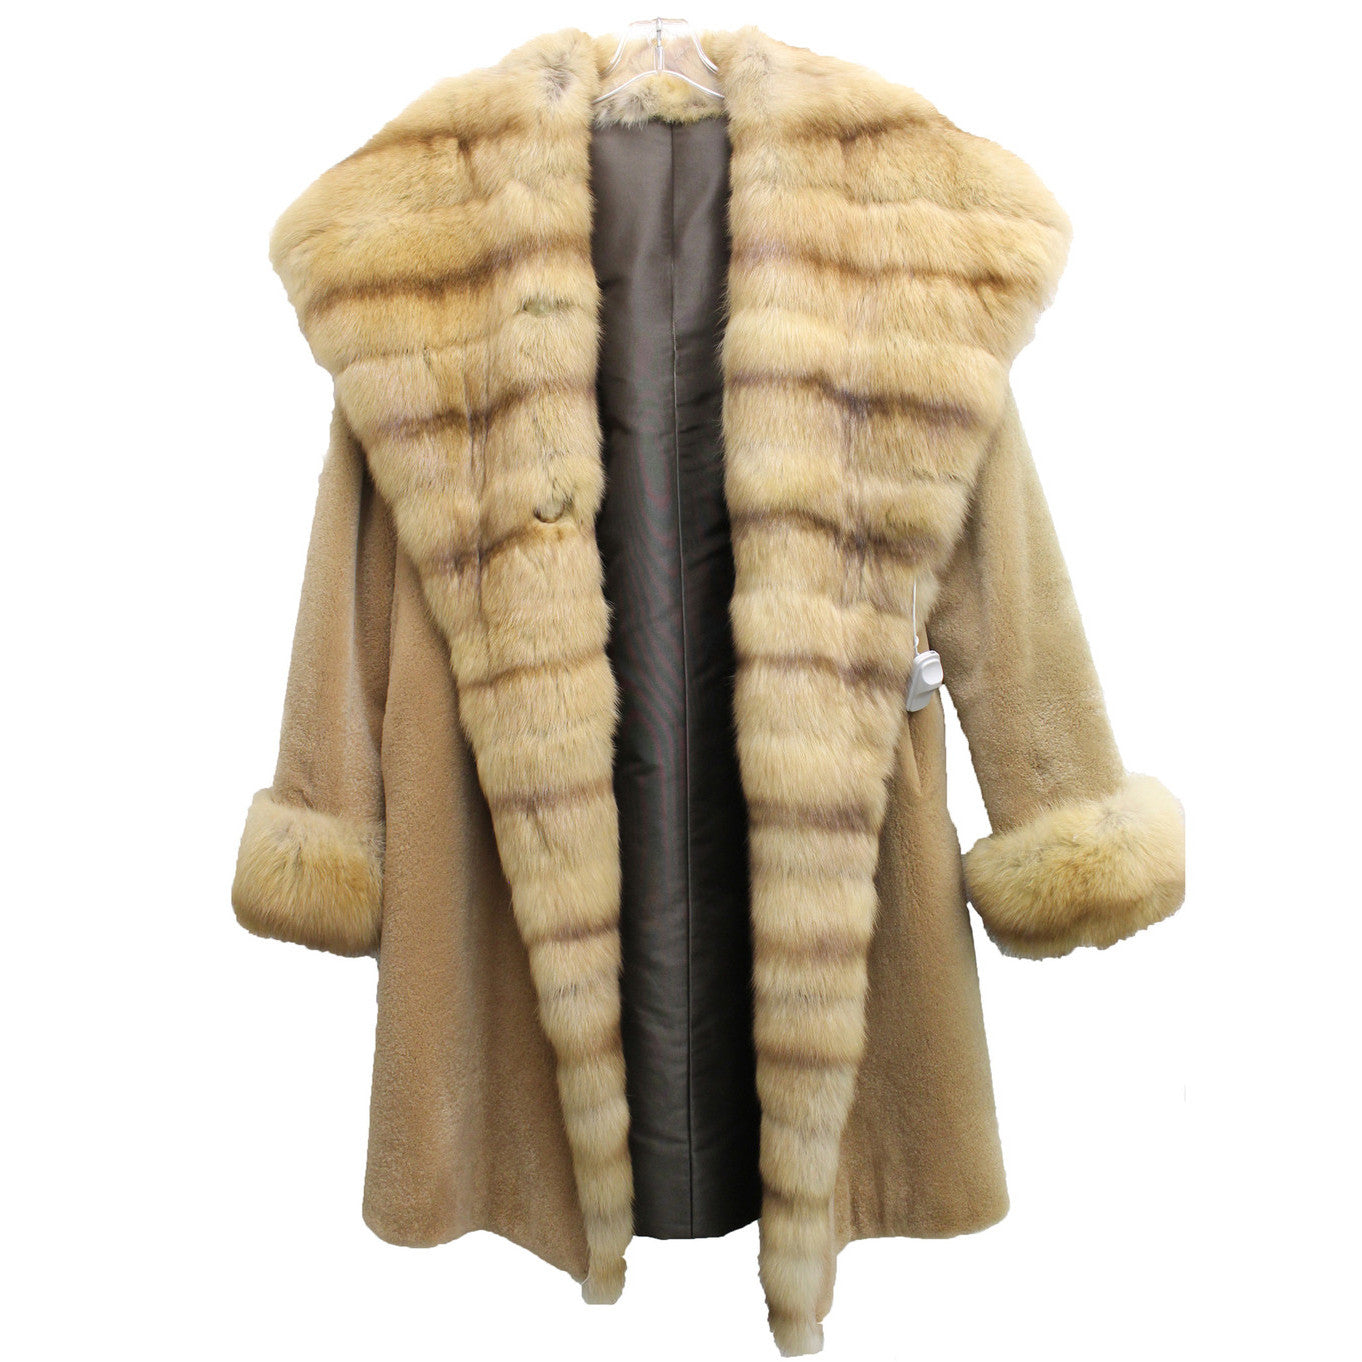 J. Mendel Sable and Beaver Fur Reversible Coat w/Hood (Size M) - Encore Consignment - 15